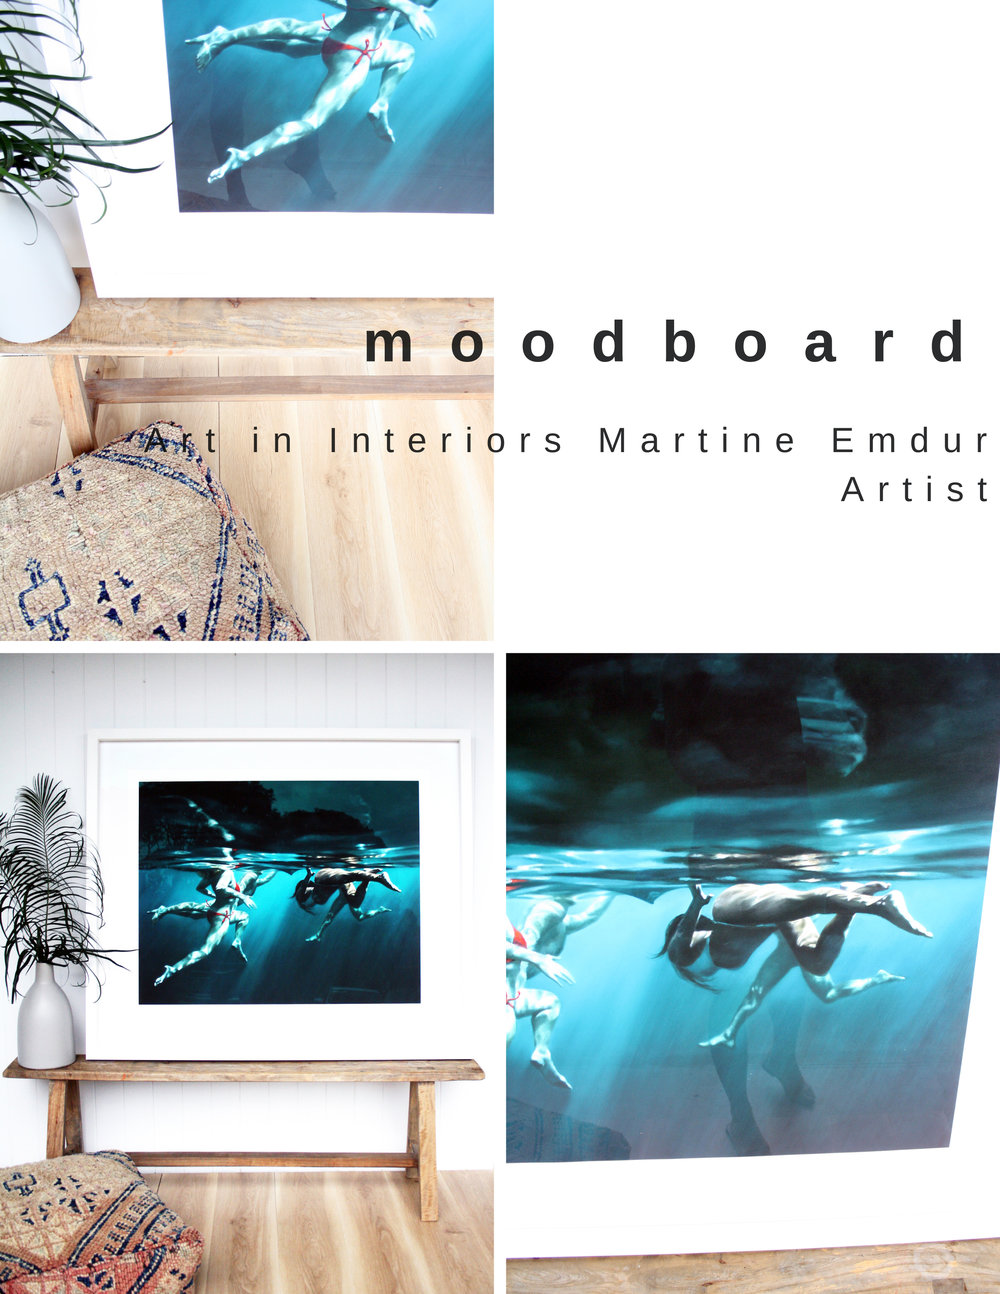 Art In Interiors Moodboard Martine Emdur .jpg